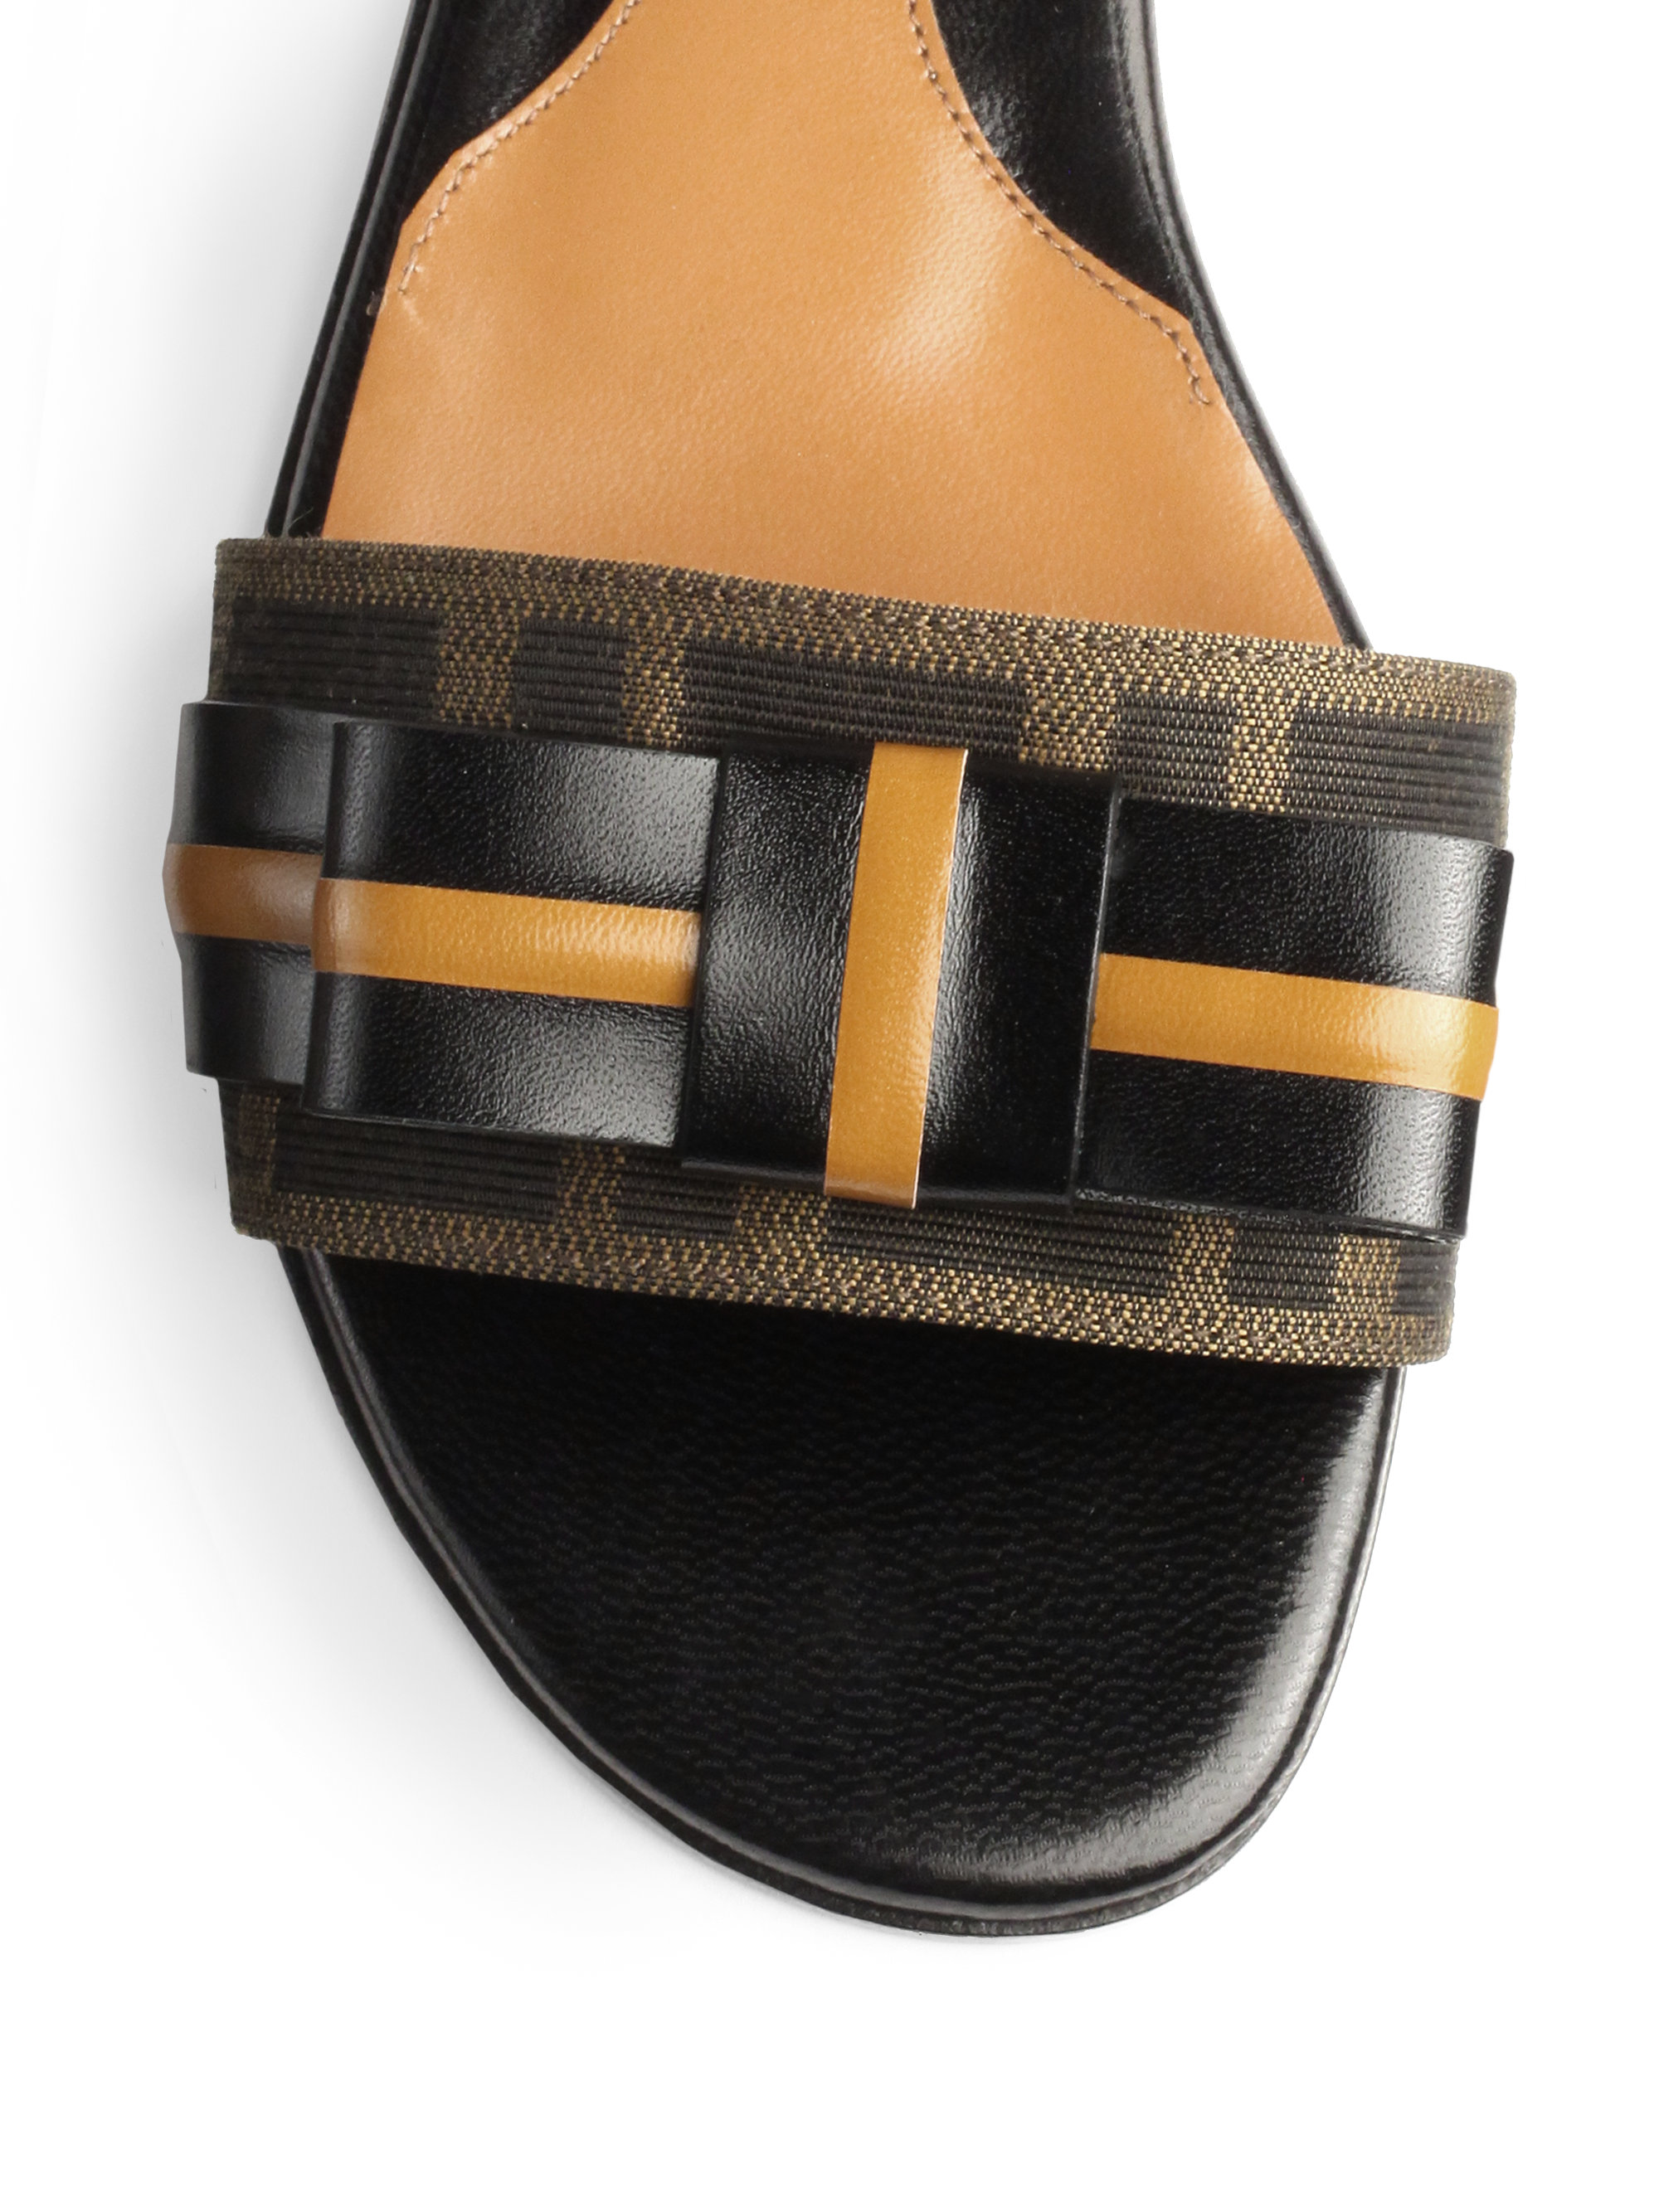 ab770bfeda20 Lyst - Fendi Leather Jacquard Canvas Slide Sandals in Black